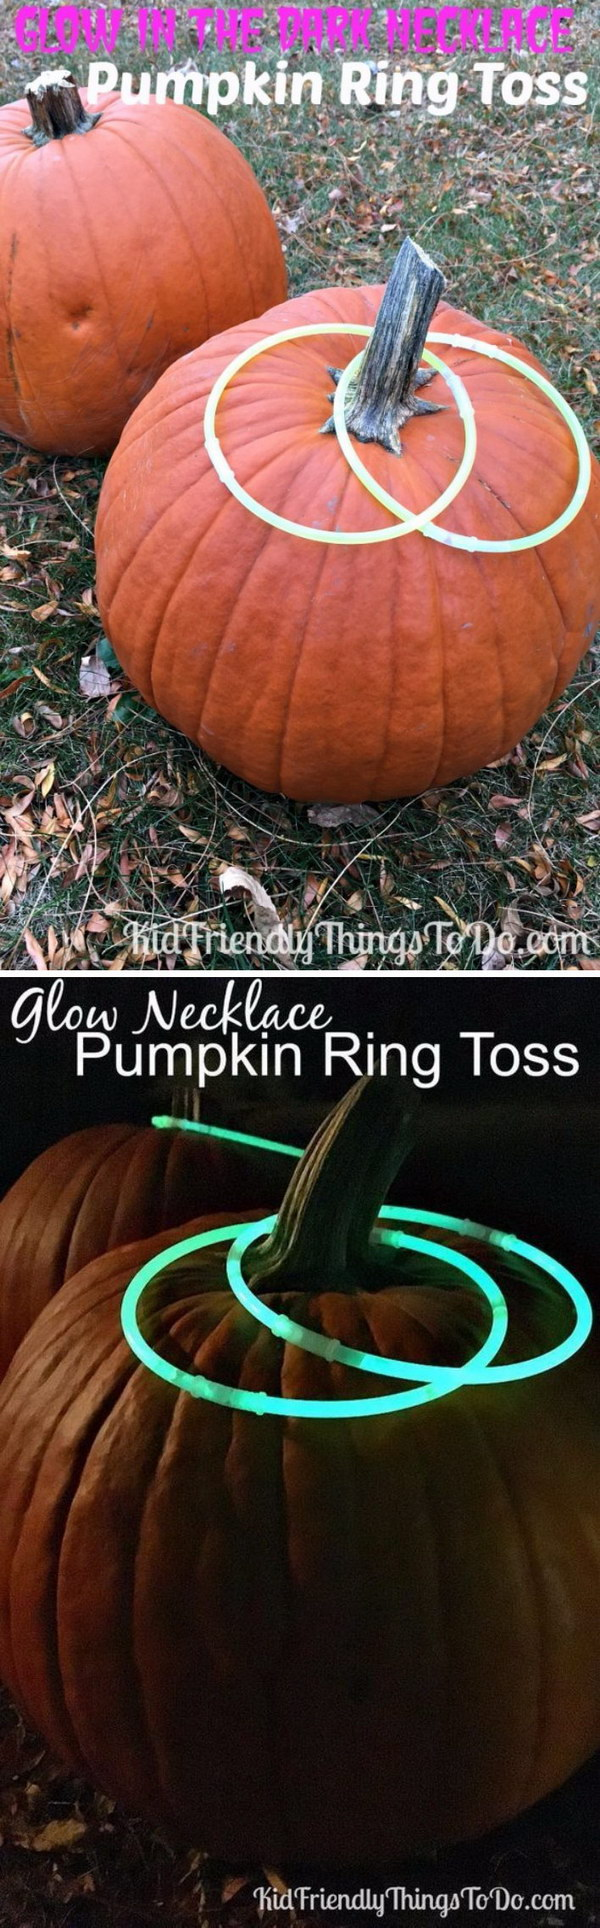 Halloween Ring Toss Game Using Glow In The Dark Necklaces As Rings.